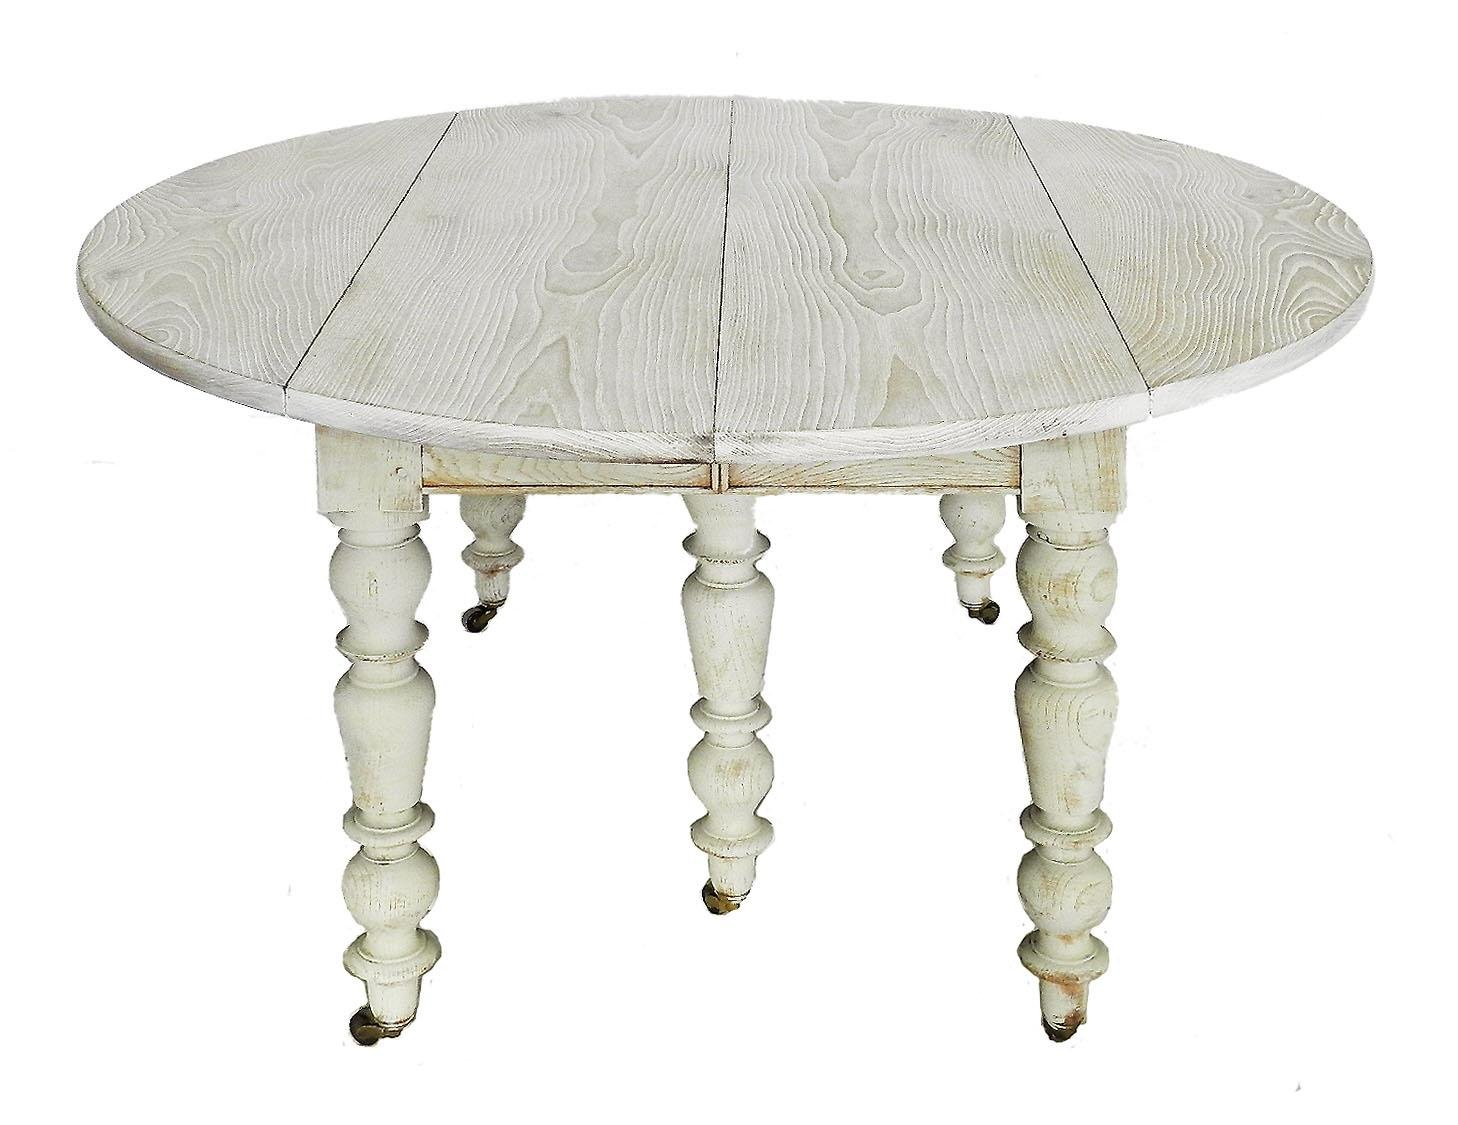 19th-Century French Oak Drop-Leaf Extending Dining Table, 1850s